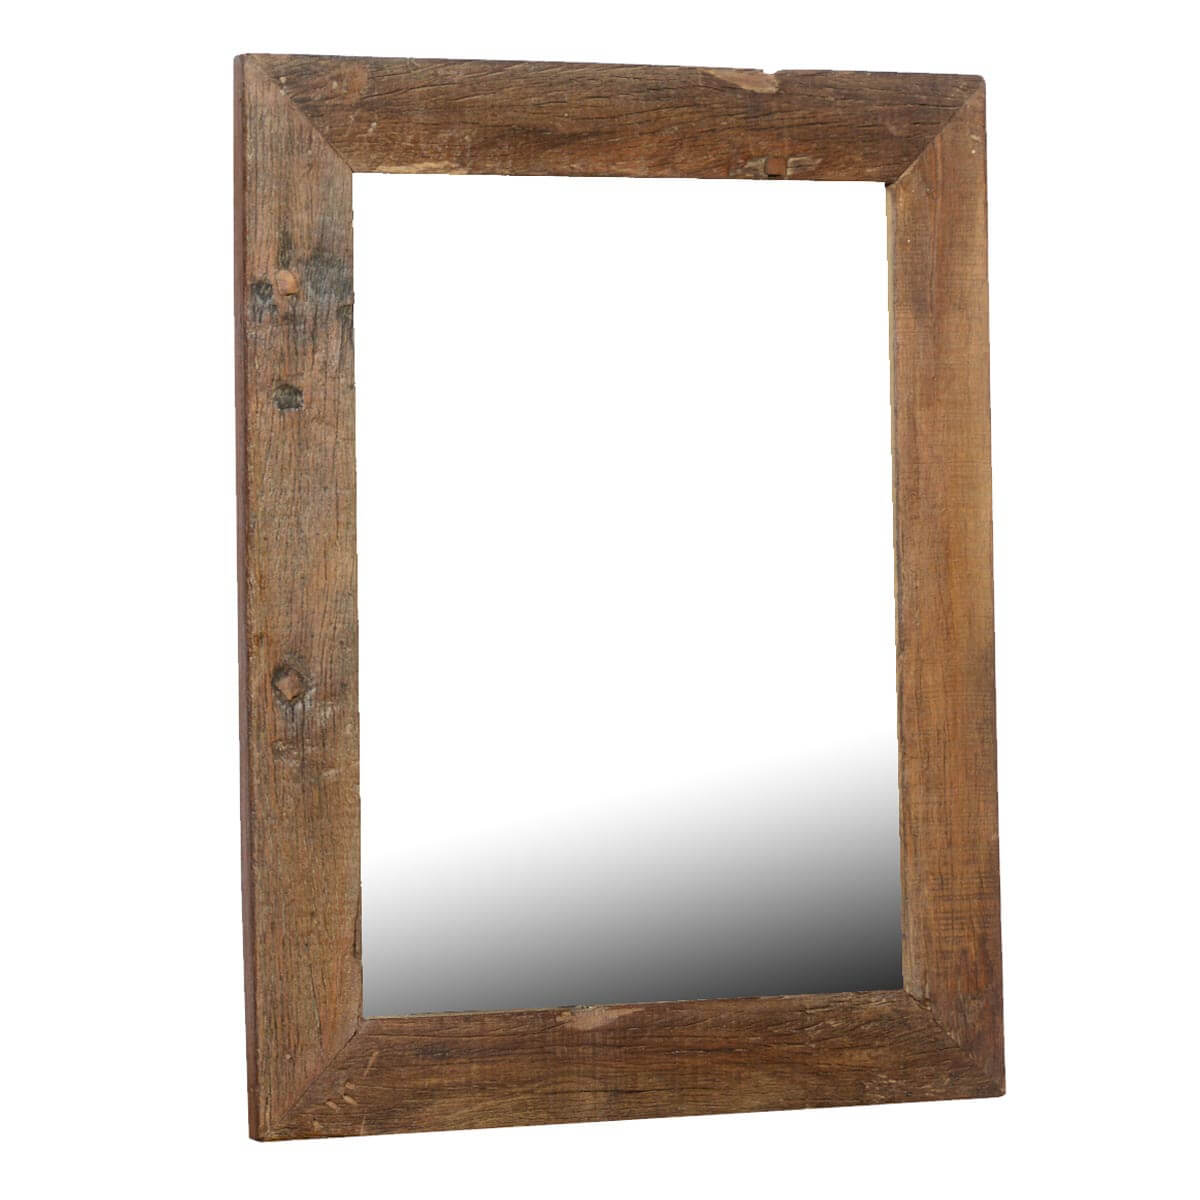 Appalachian rustic large reclaimed wood wall mirror w for Rustic mirror